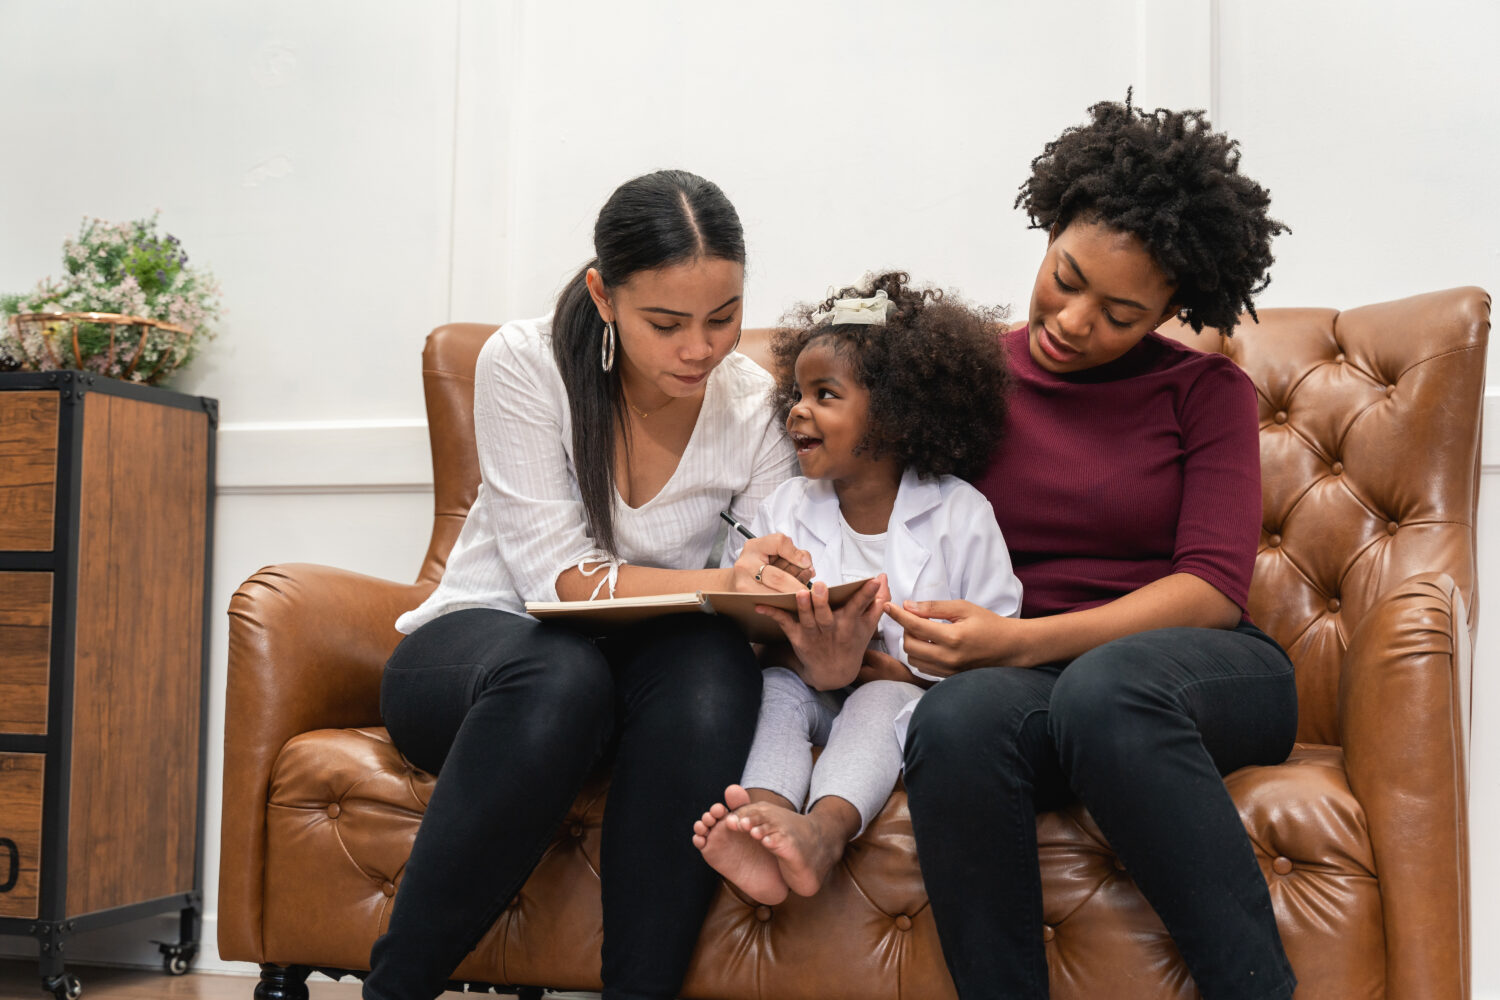 black lesbian mothers write in a notebook with their daughter between them